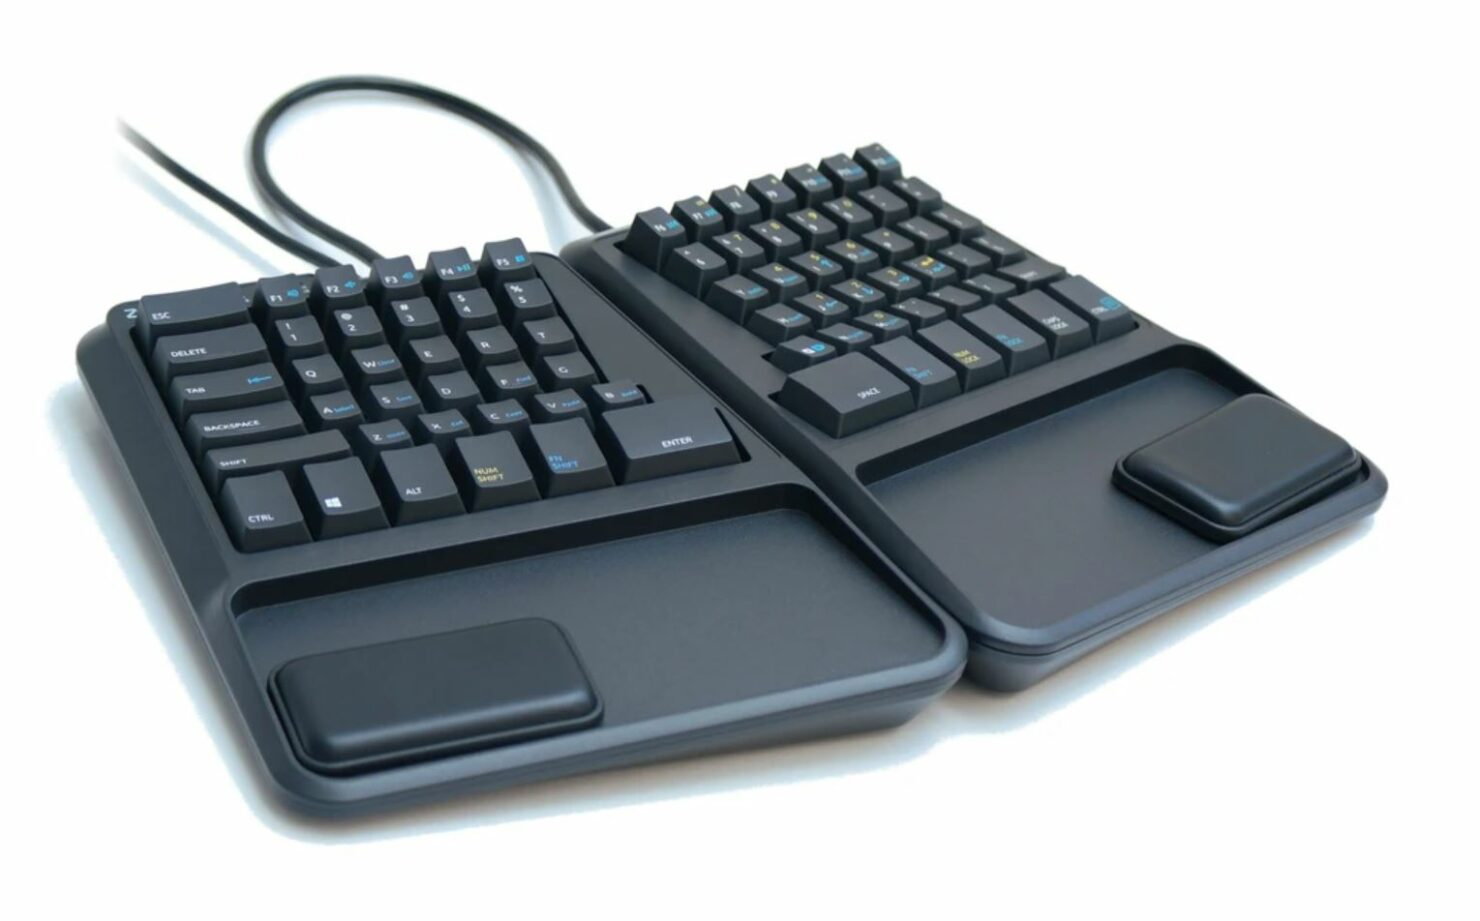 zergotech-freedom-keyboard-review-ergonomics-and-performance-in-a-uniquehellip